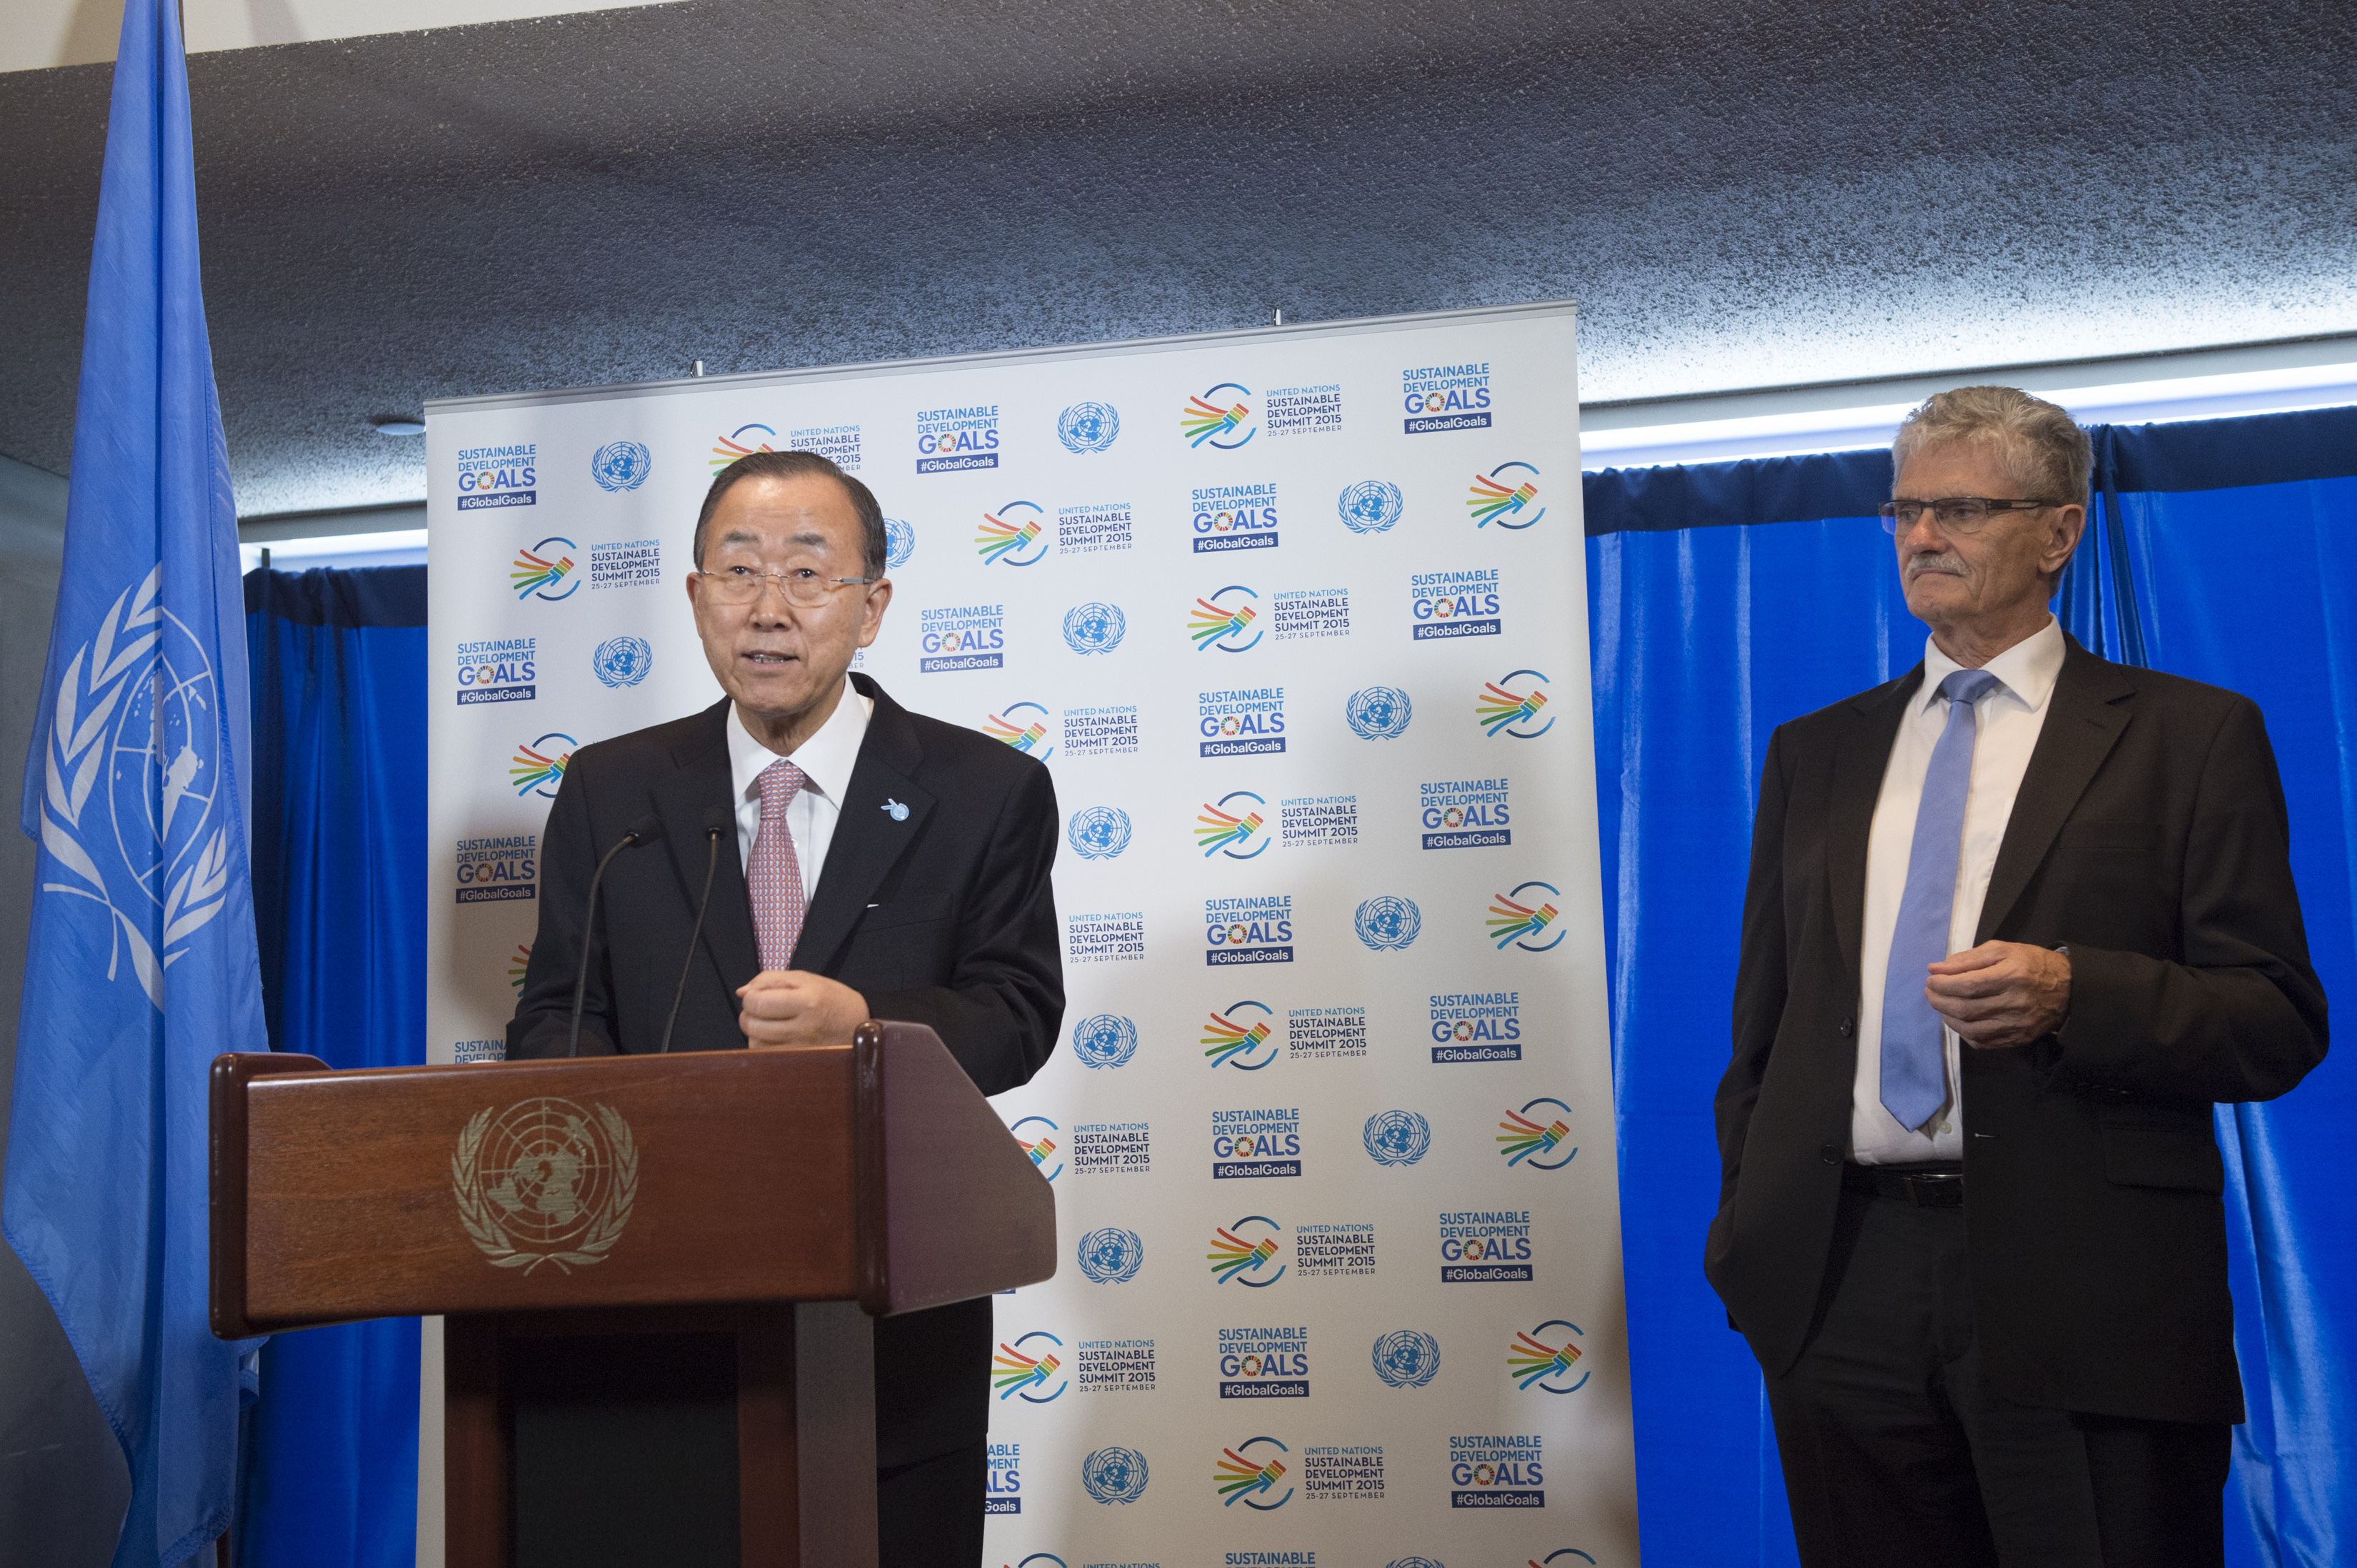 Stakeout by Secretary-General Ban Ki-moon and PGA